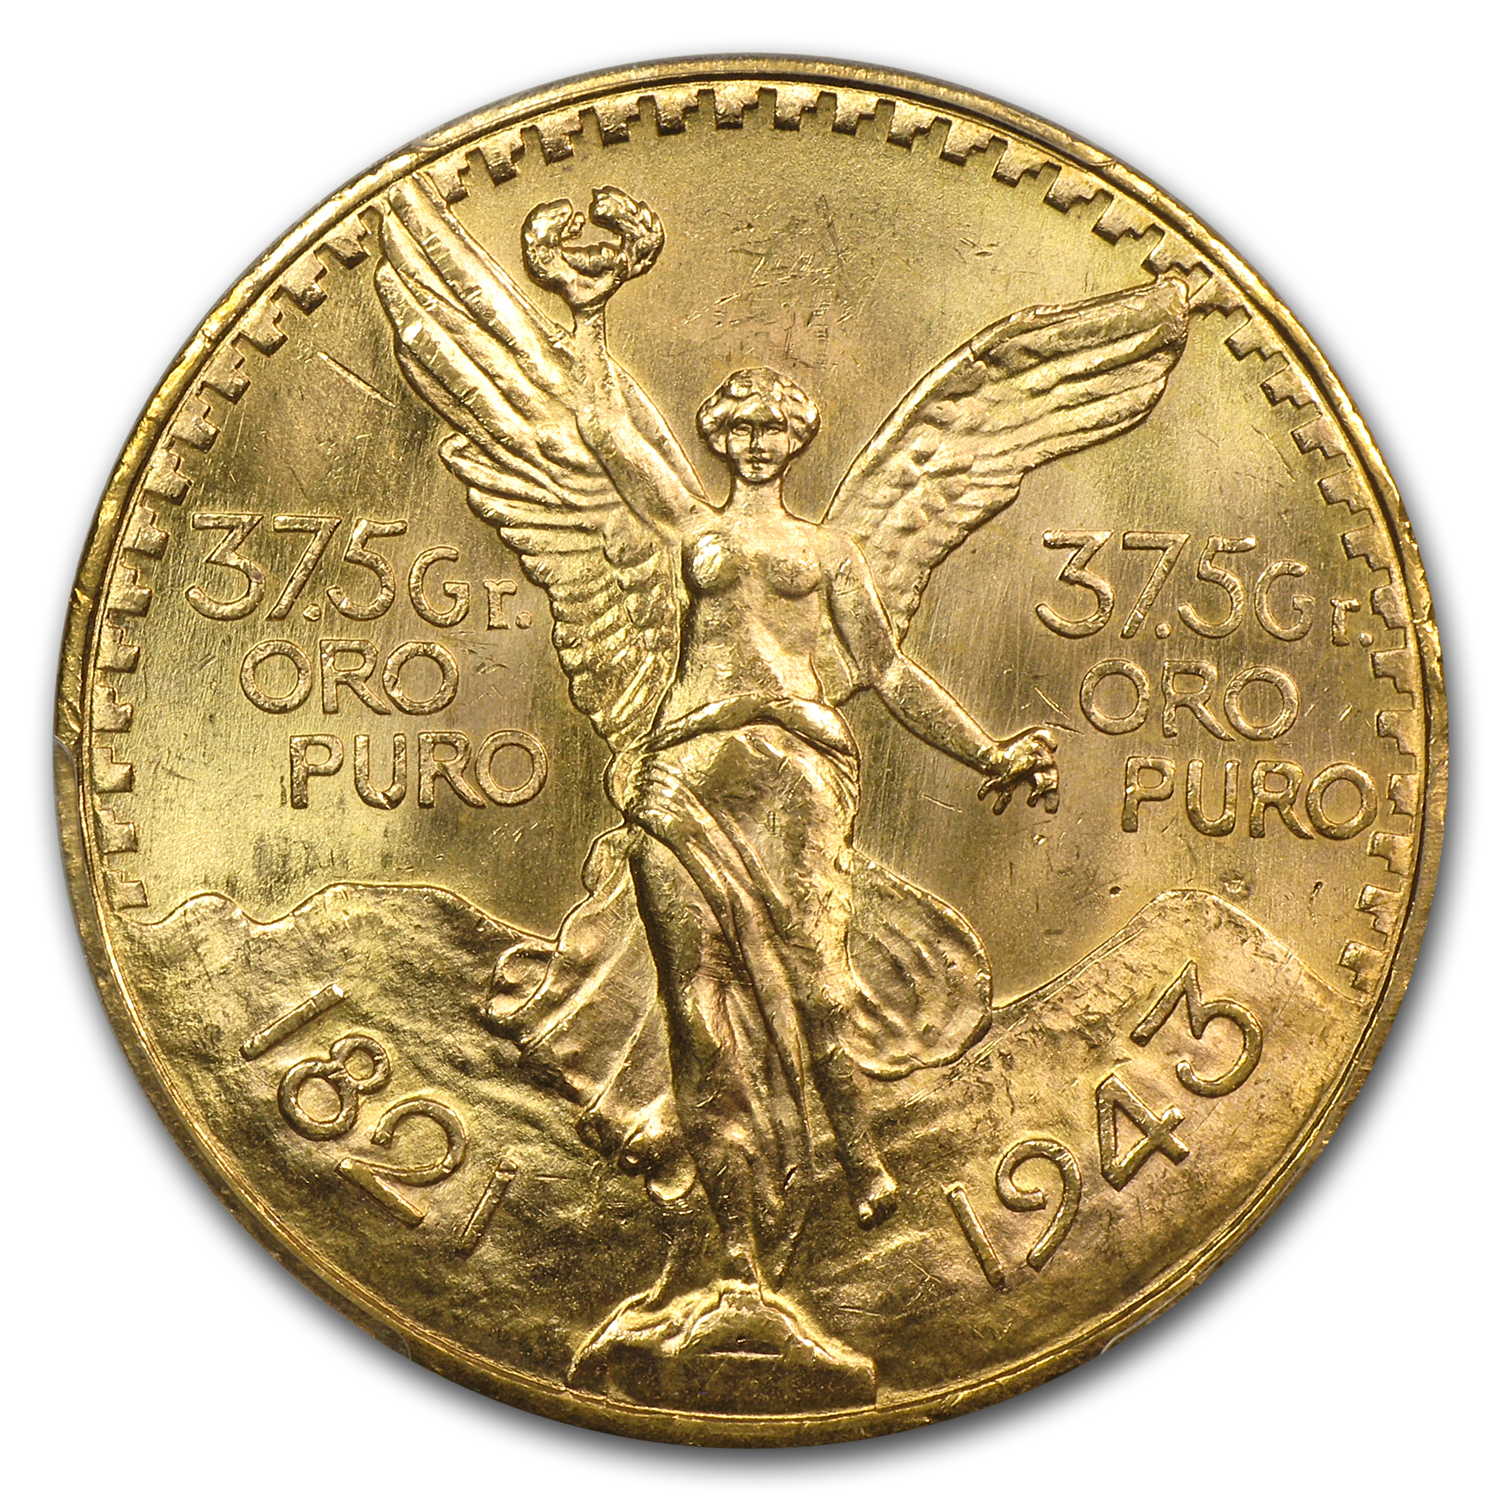 Mexico 1943 50 Pesos Gold Coin - MS-65+ PCGS